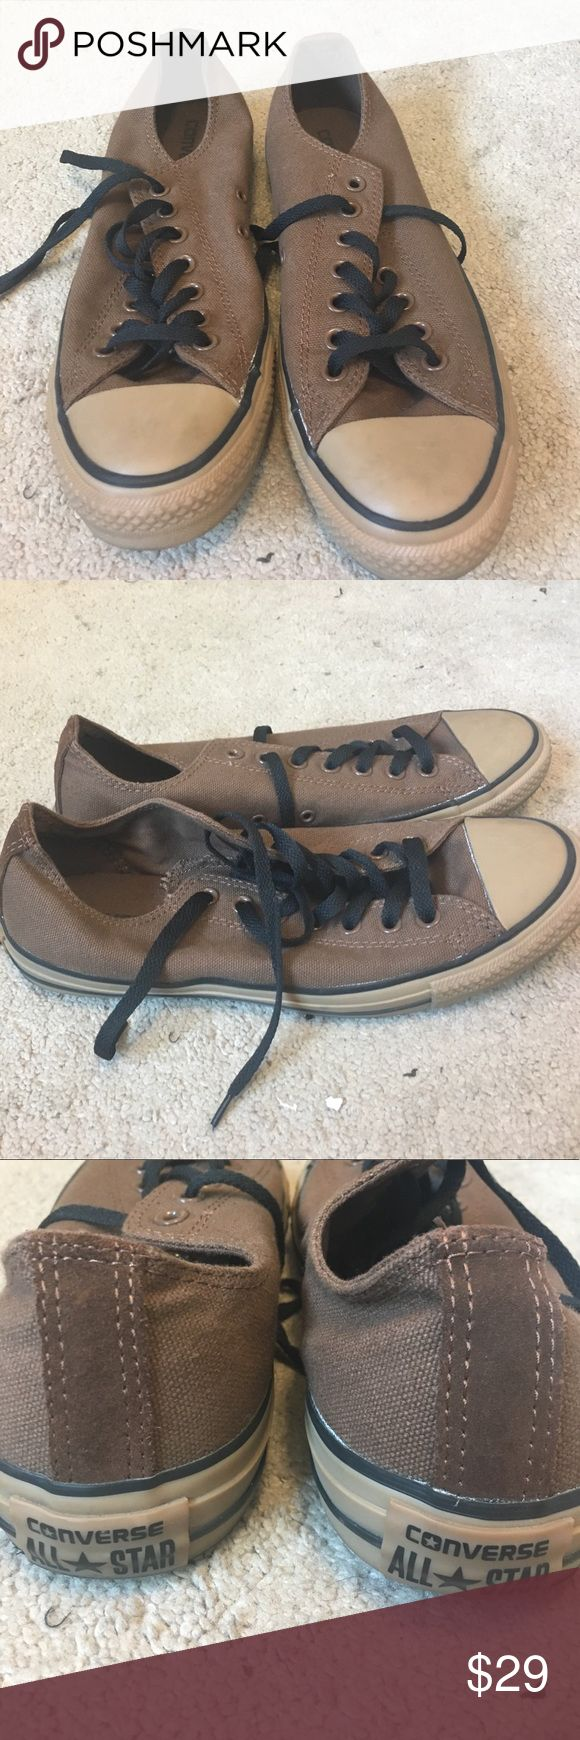 Converse All star Women 11 Men 9 Purchased from converse store brown converse worn one time put in closet storage since they are canvas material and like new has some glue edge discoloration on right inside as pictured Converse Shoes Sneakers